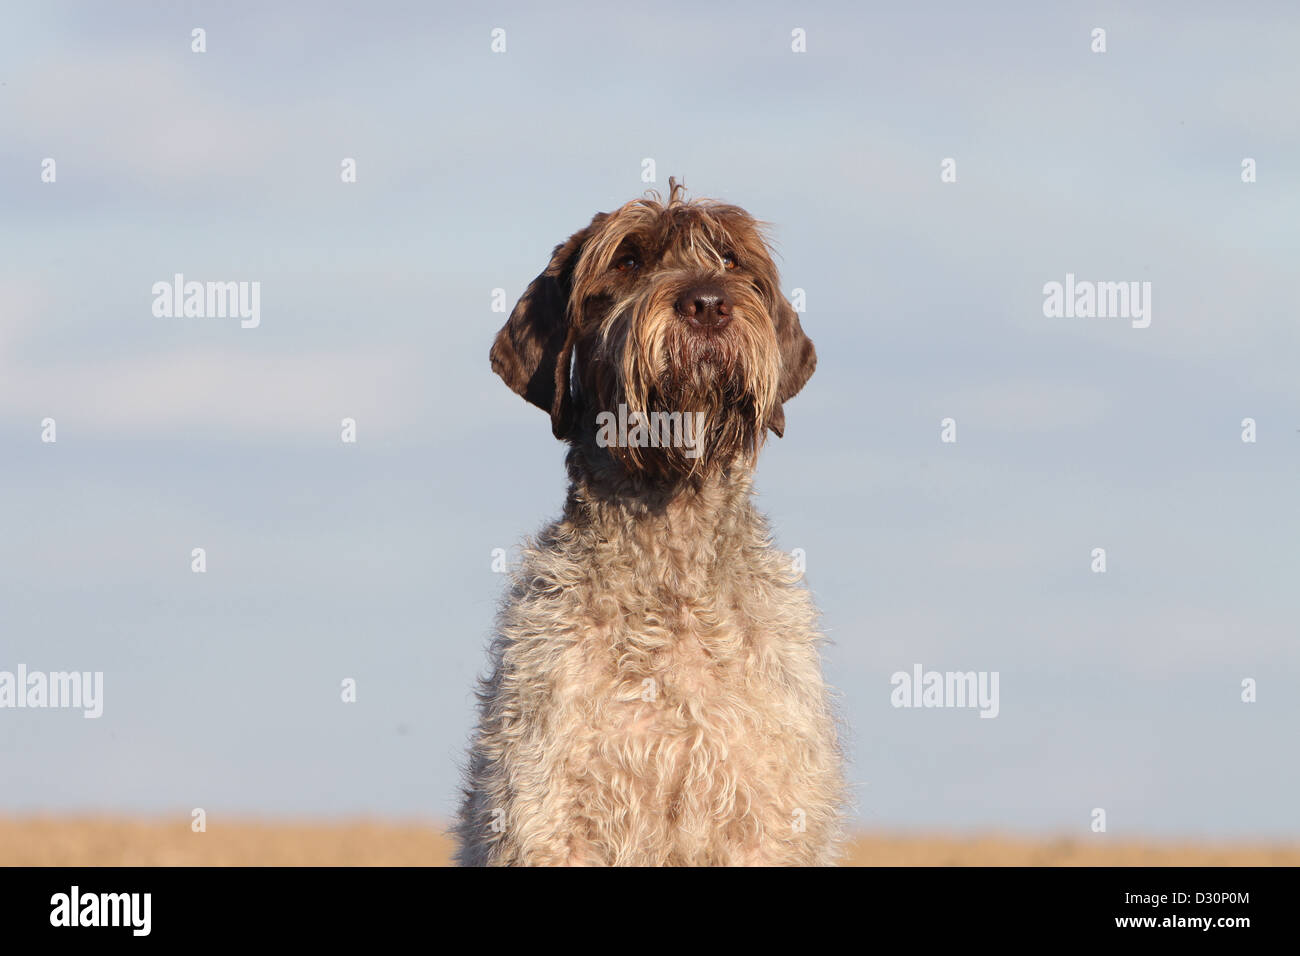 Wirehaired Pointing Griffons Stock Photos & Wirehaired Pointing ...